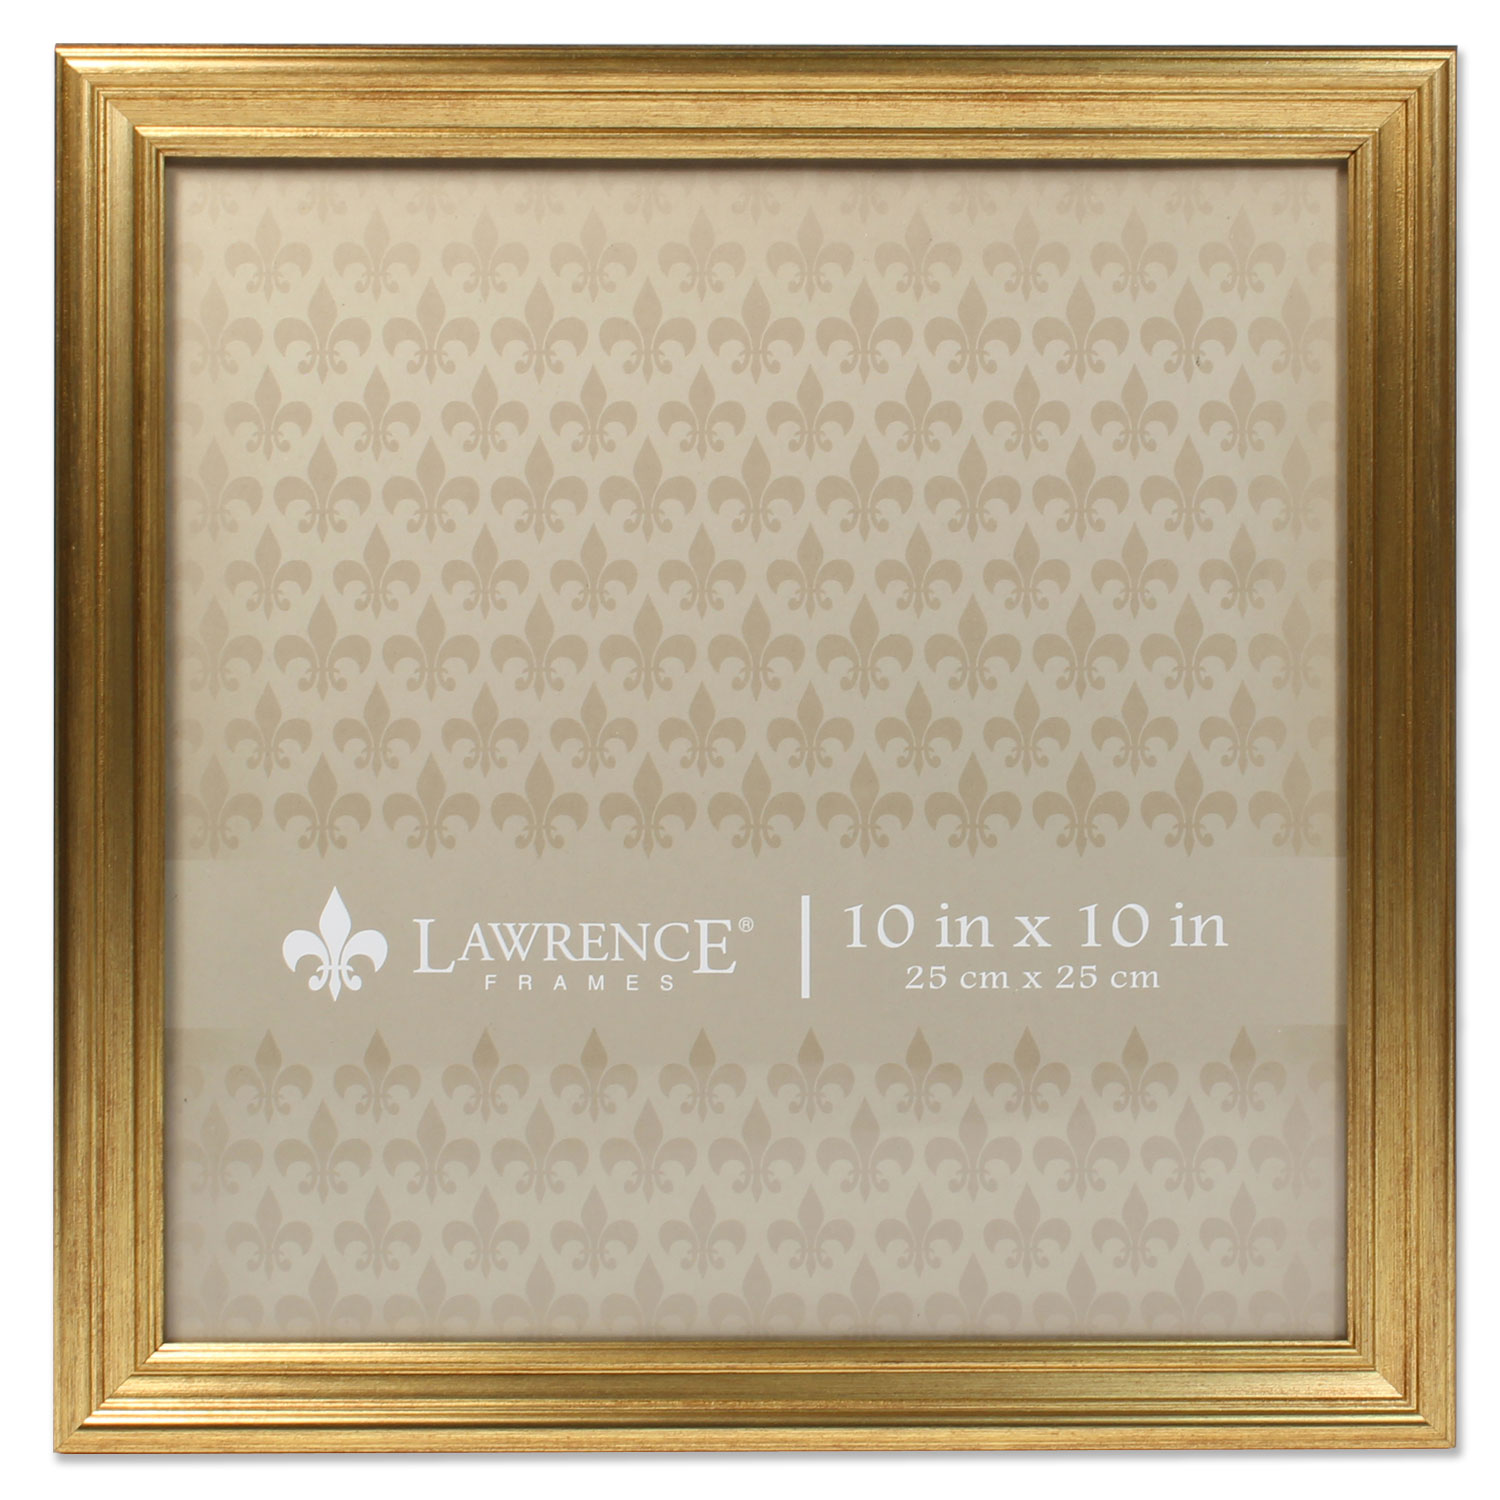 10x10 Sutter Burnished Gold Picture Frame by Lawrence Frames